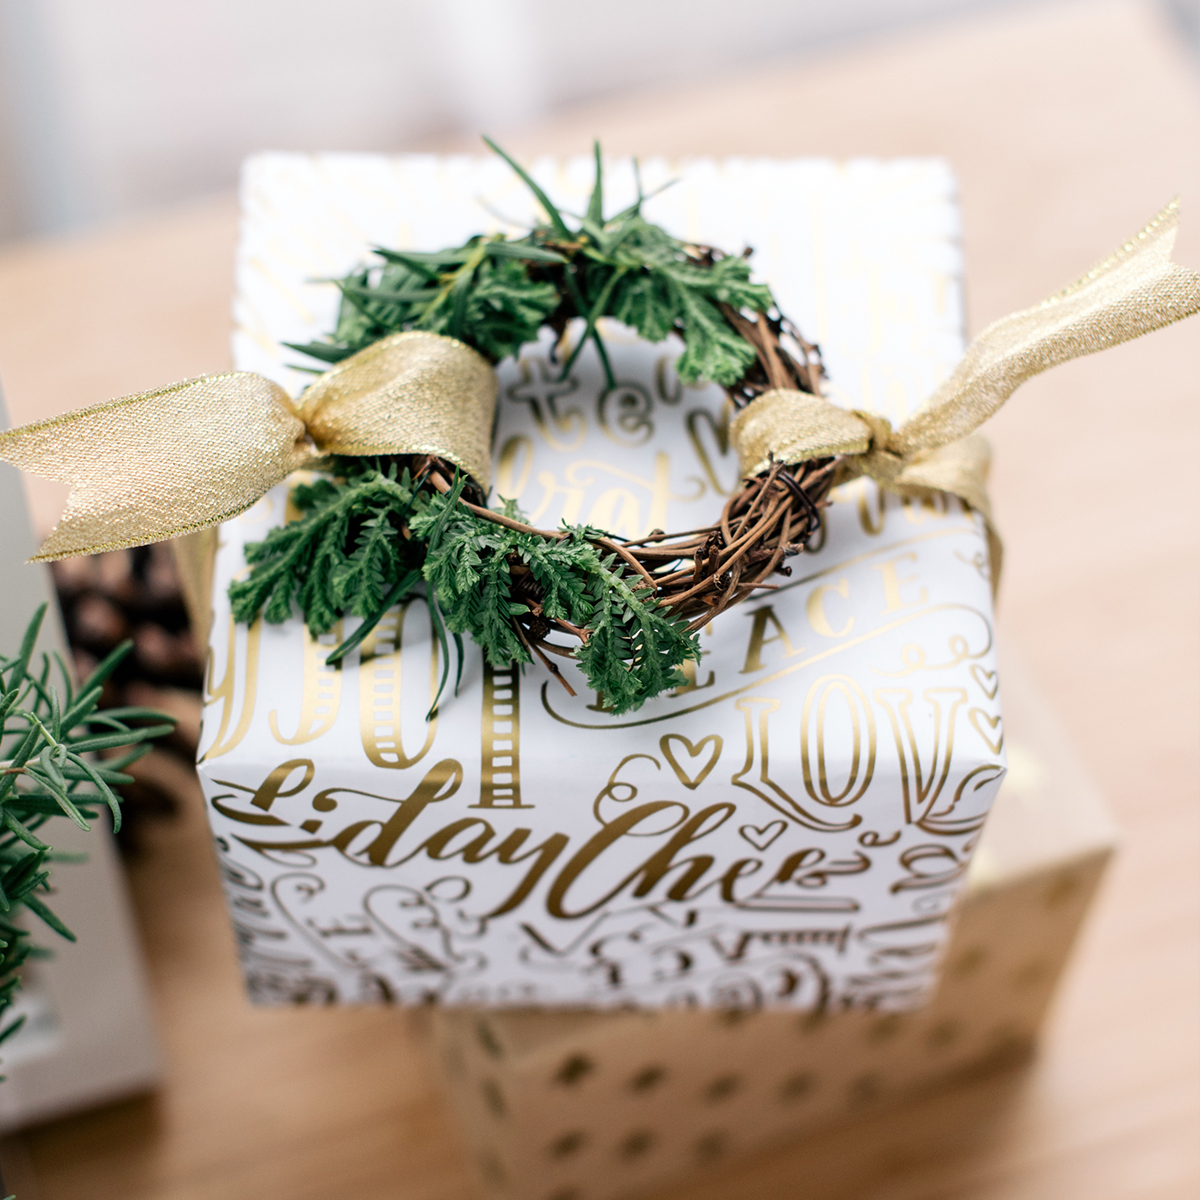 pretty gift topper inspiration from Lorrie Everitt Studio